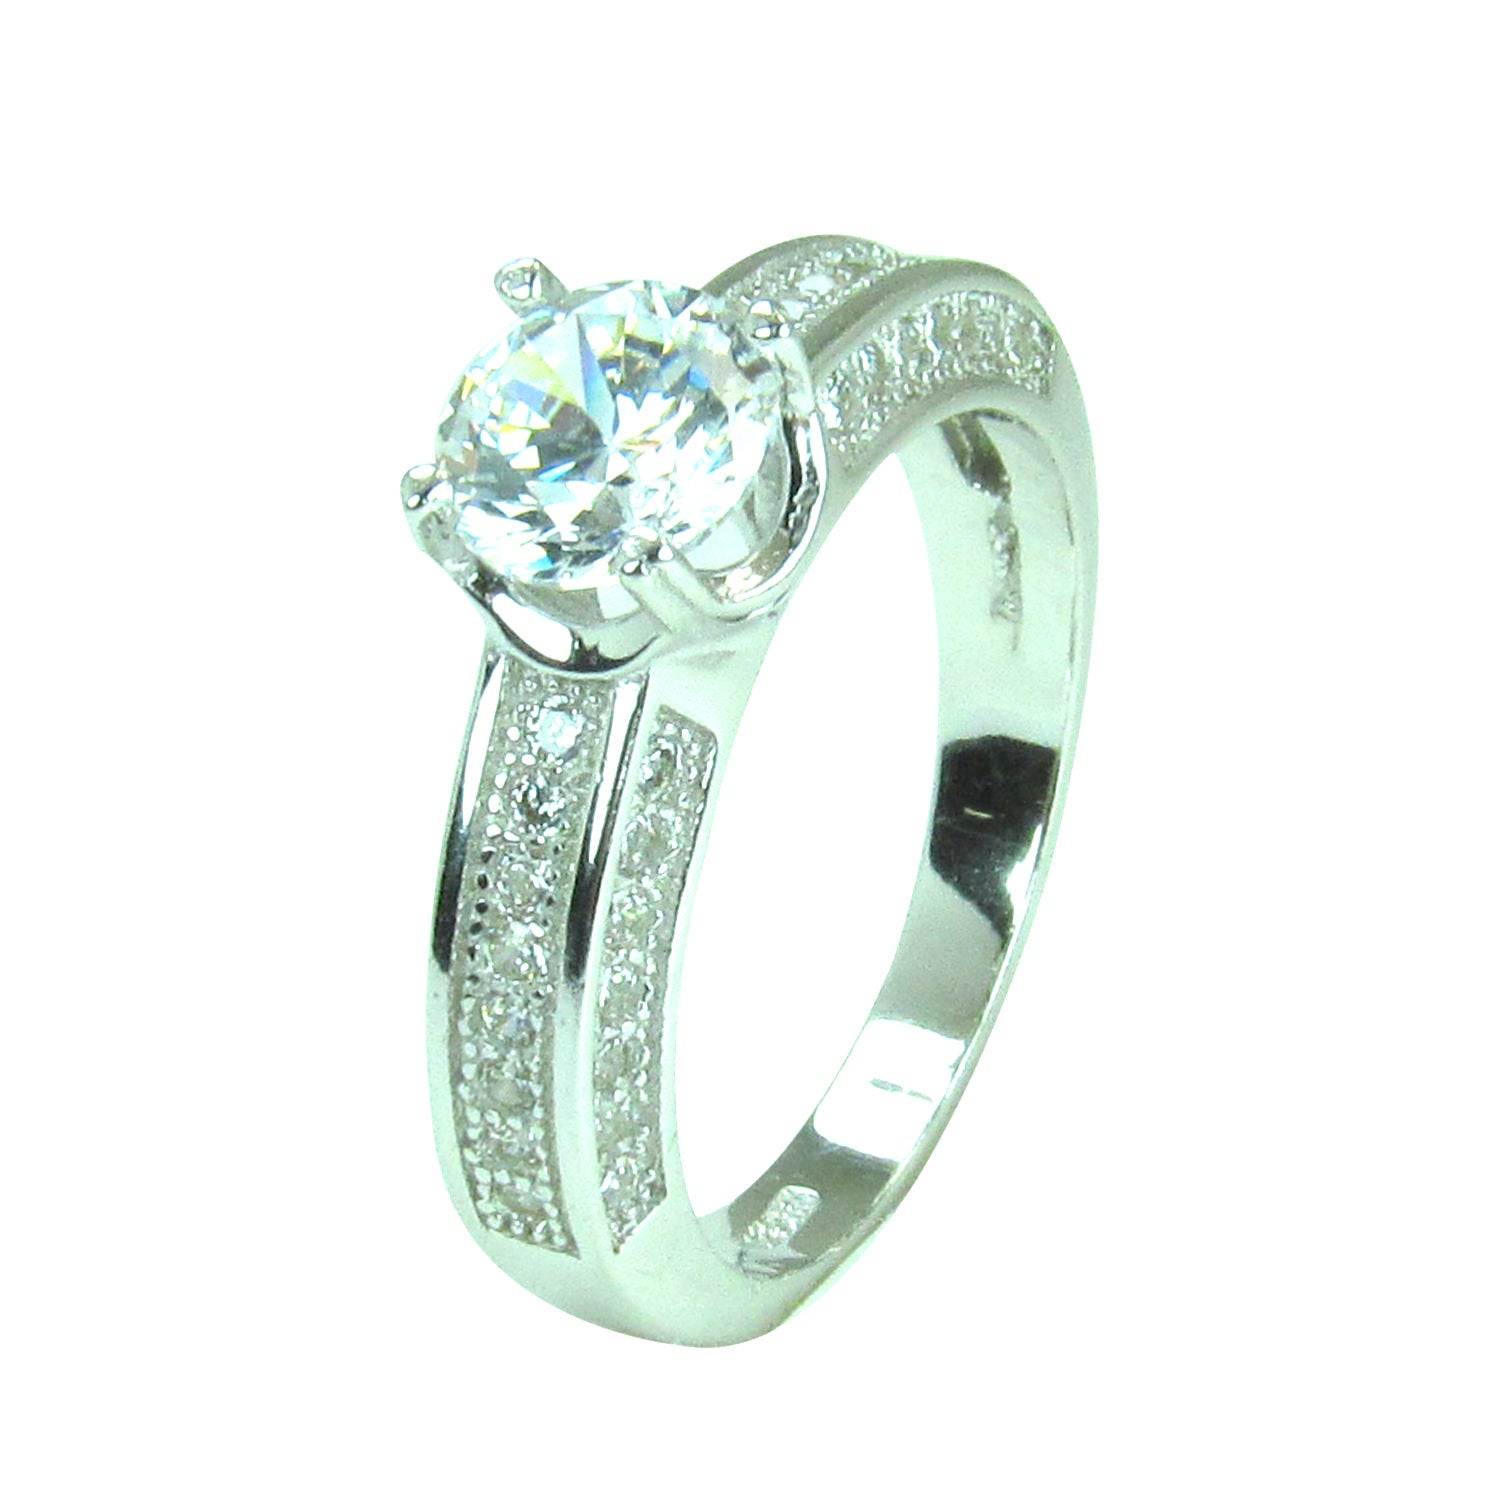 CLEAR STONE WITH SIDE PAVE CZ STERLING SILVER RING